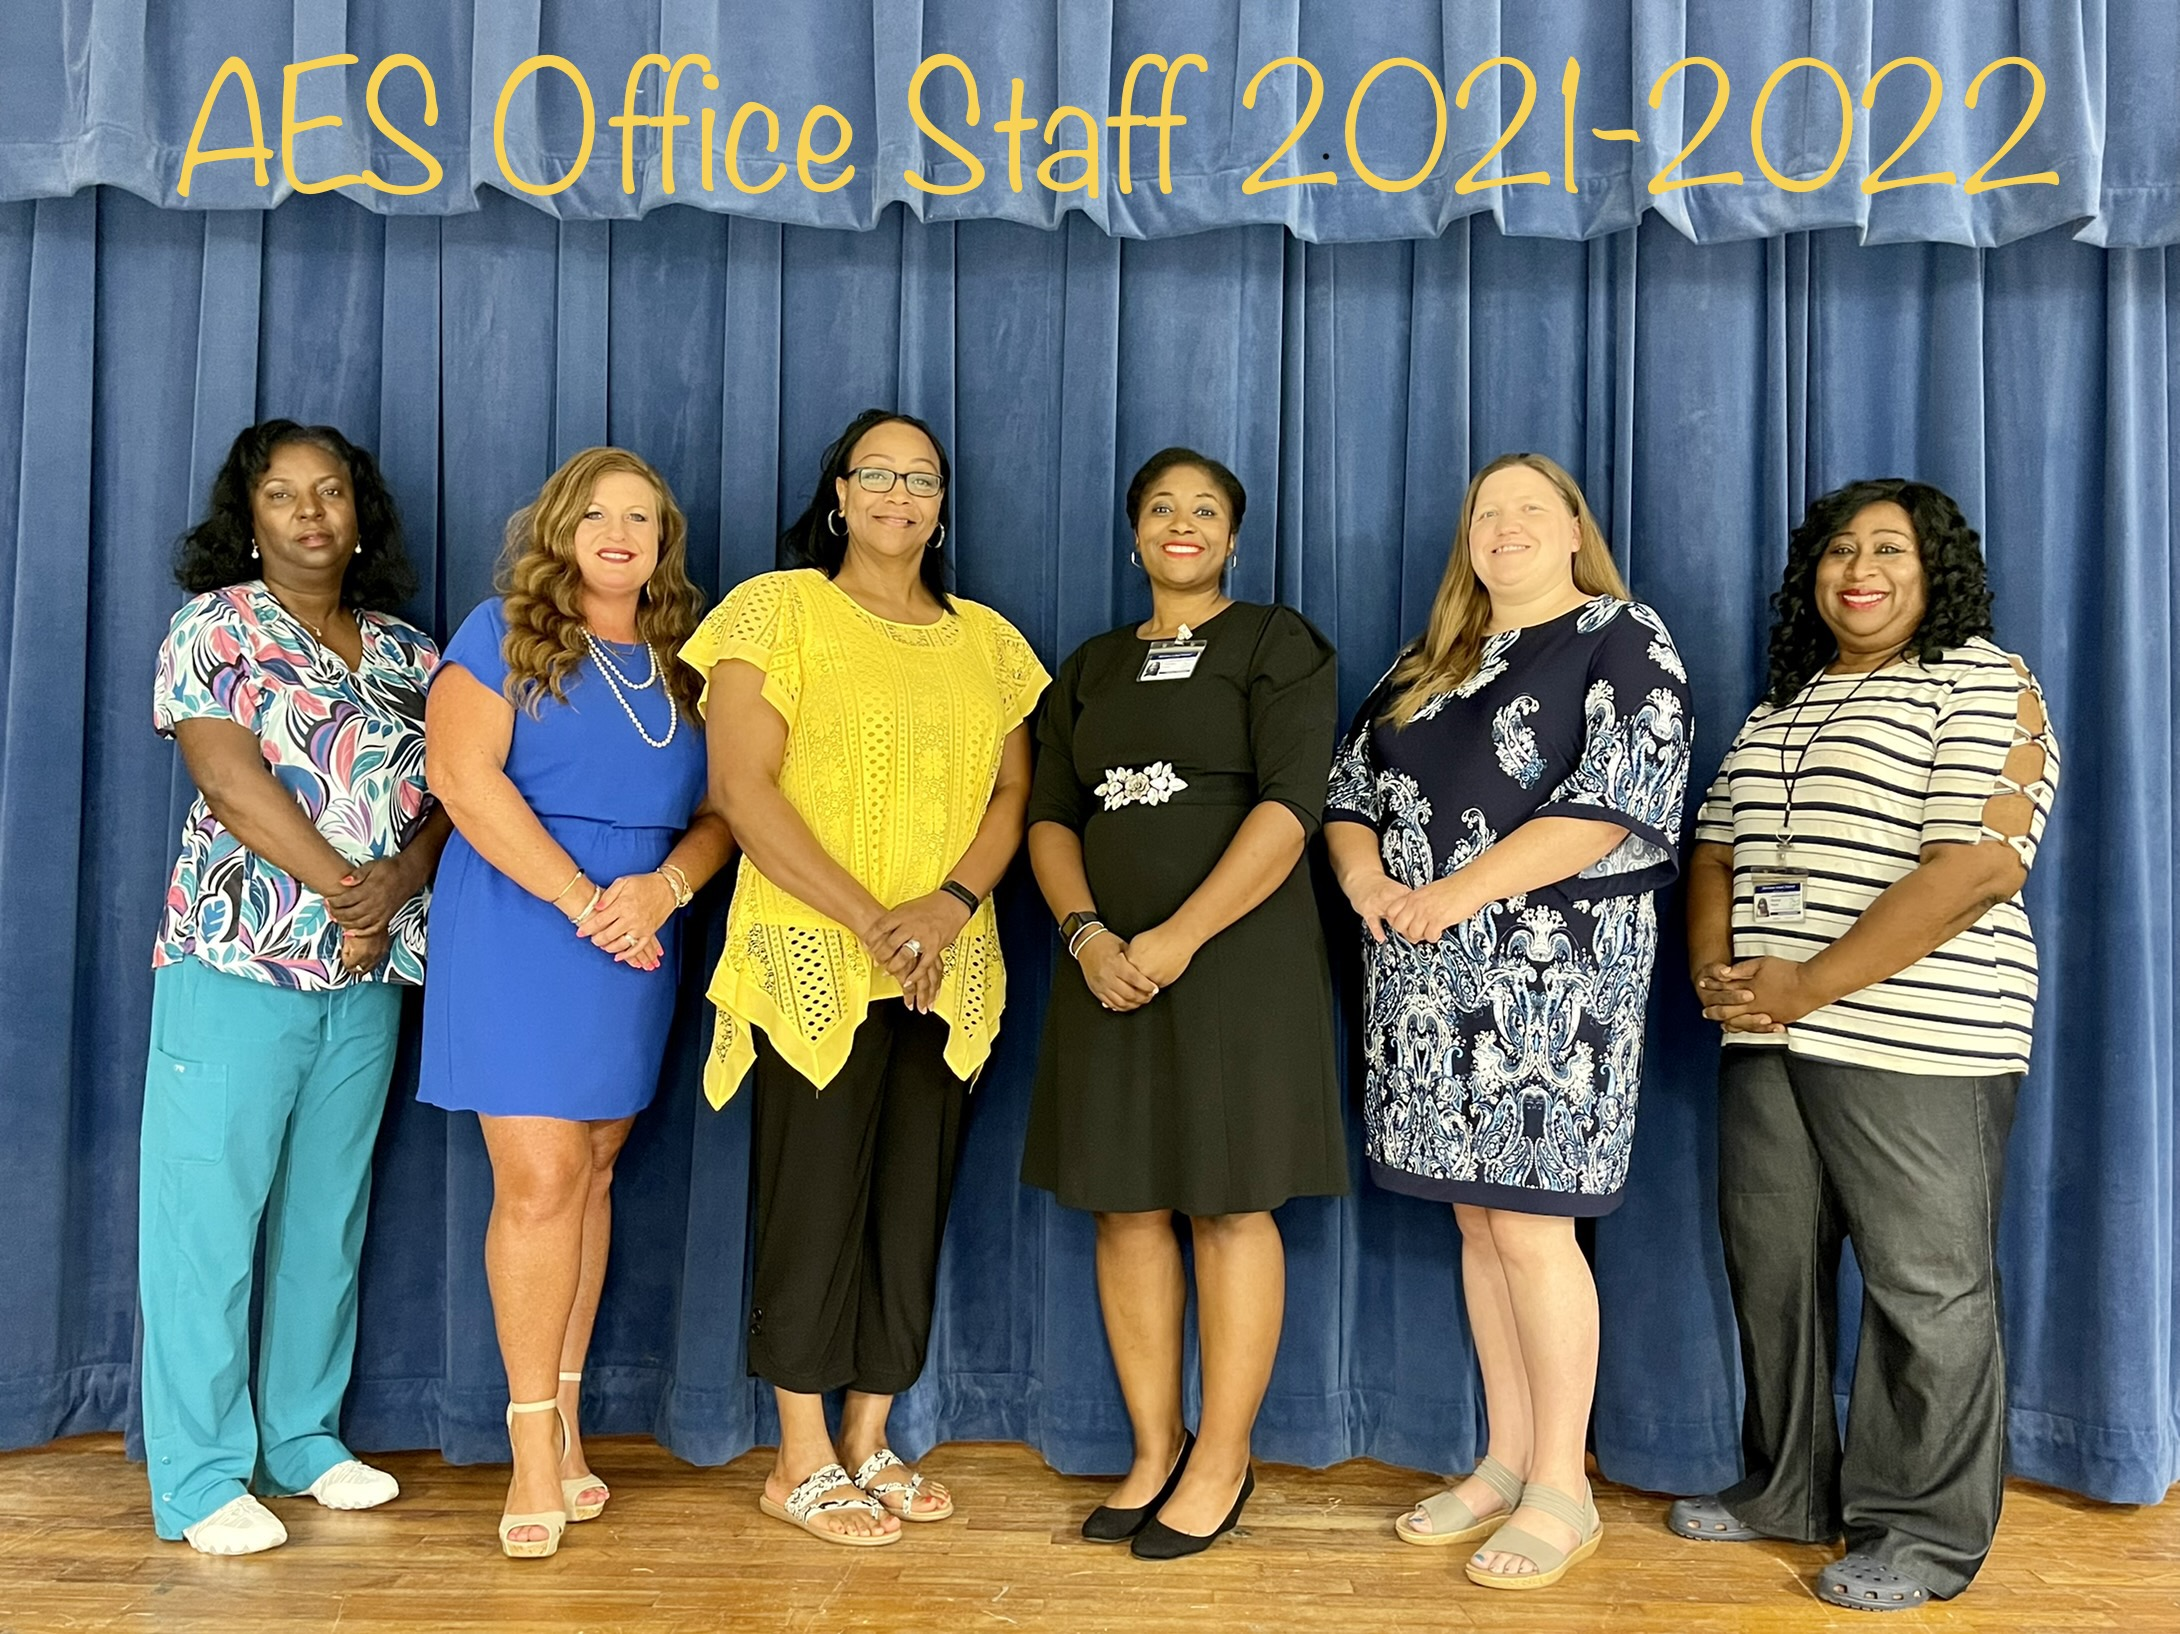 AES Office Staff